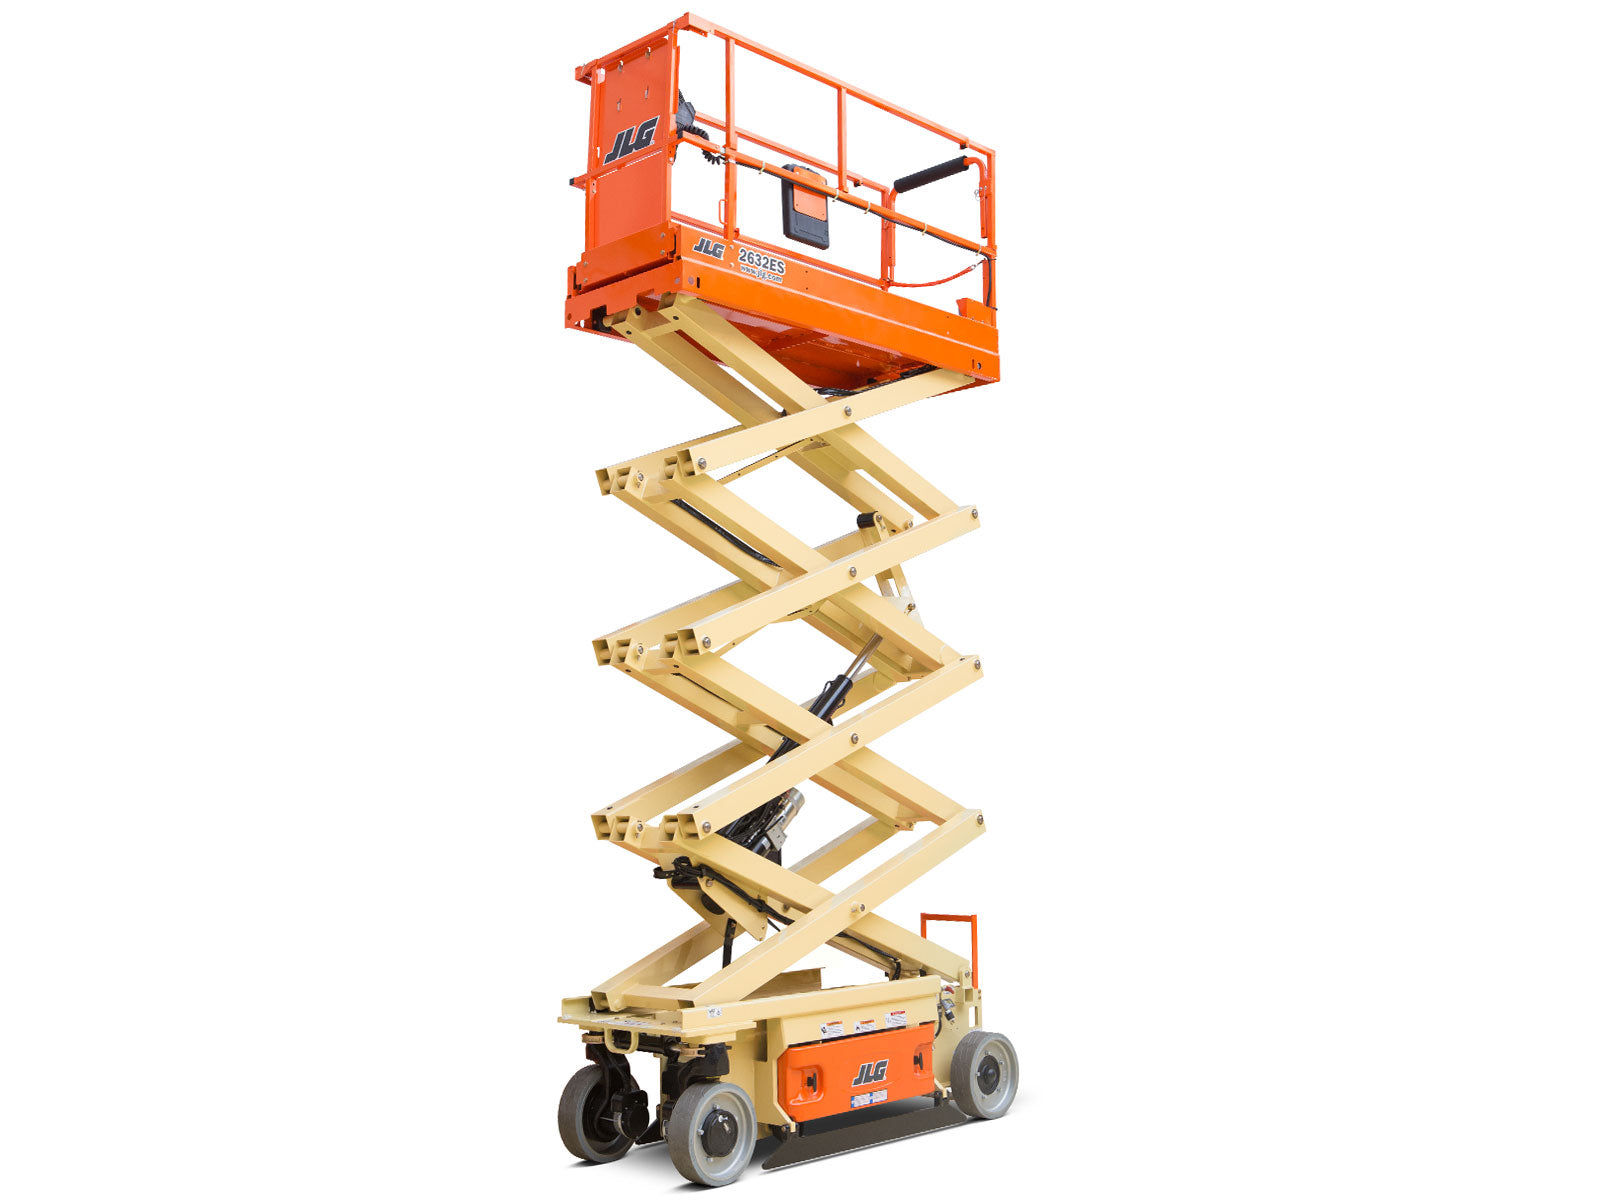 26ft Electric Scissor Lift